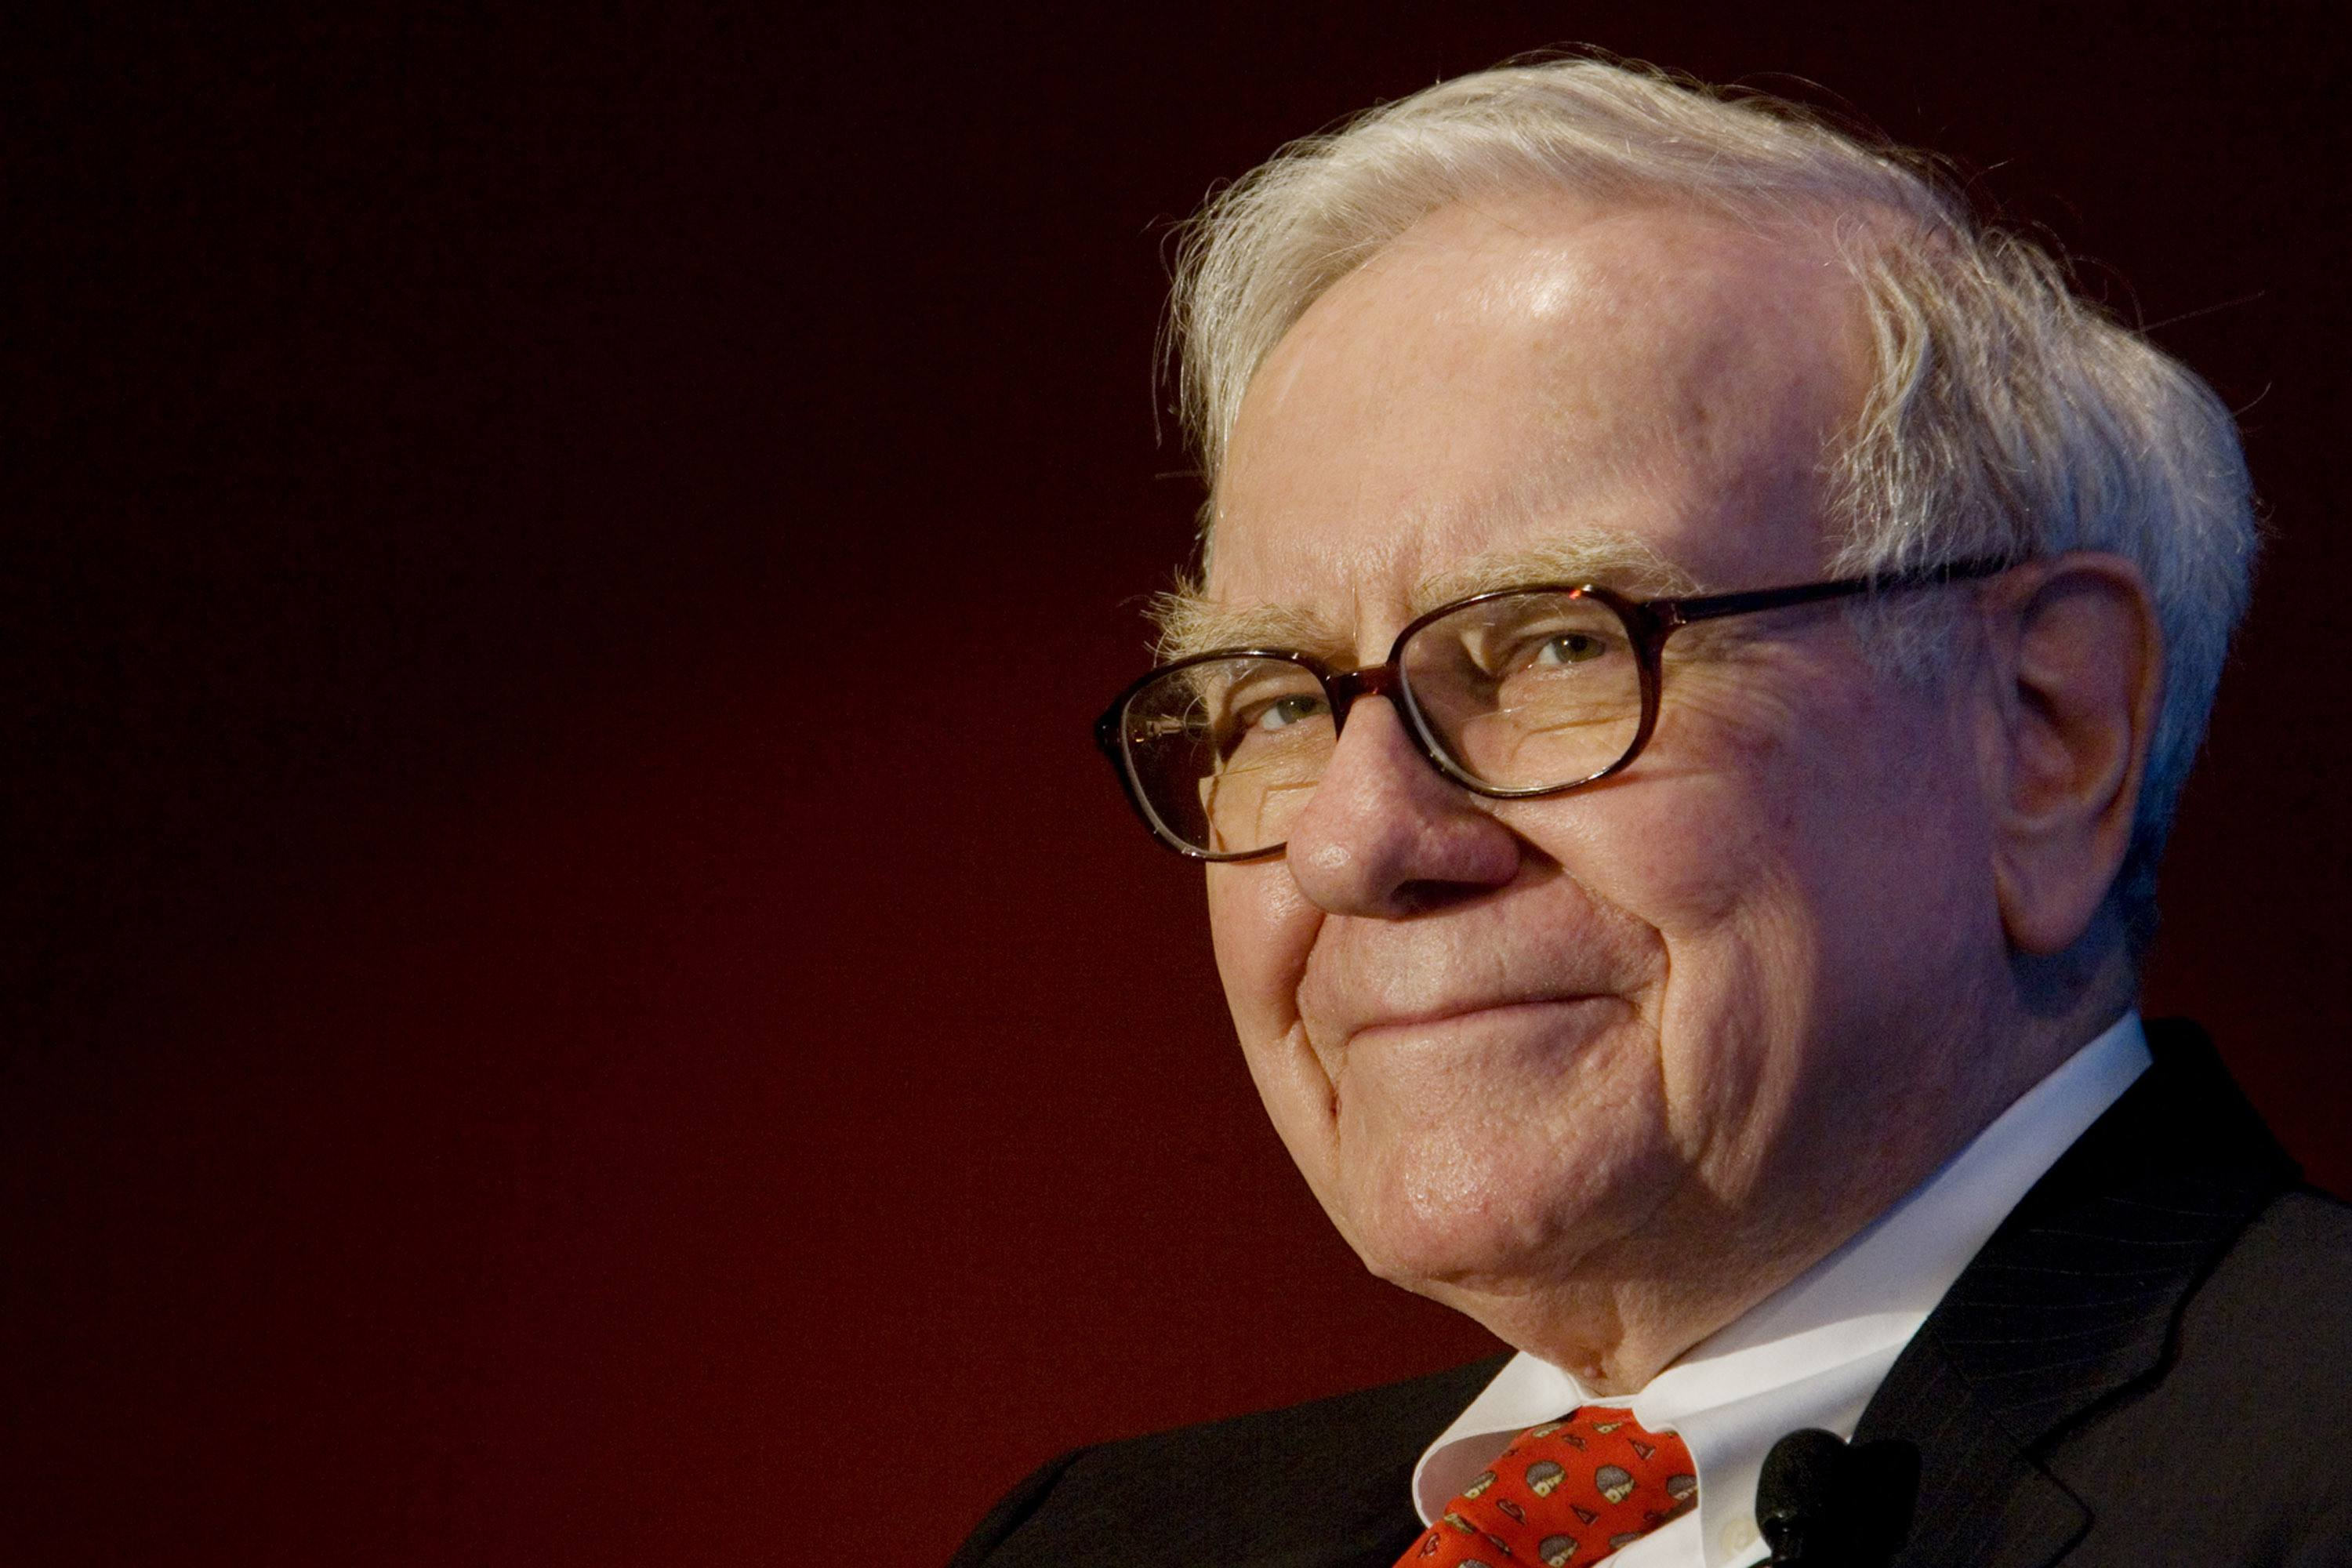 Warren-Buffett-Poor-People-ShouldnE28099t-Blame-the-Rich-for-their-Misfortune